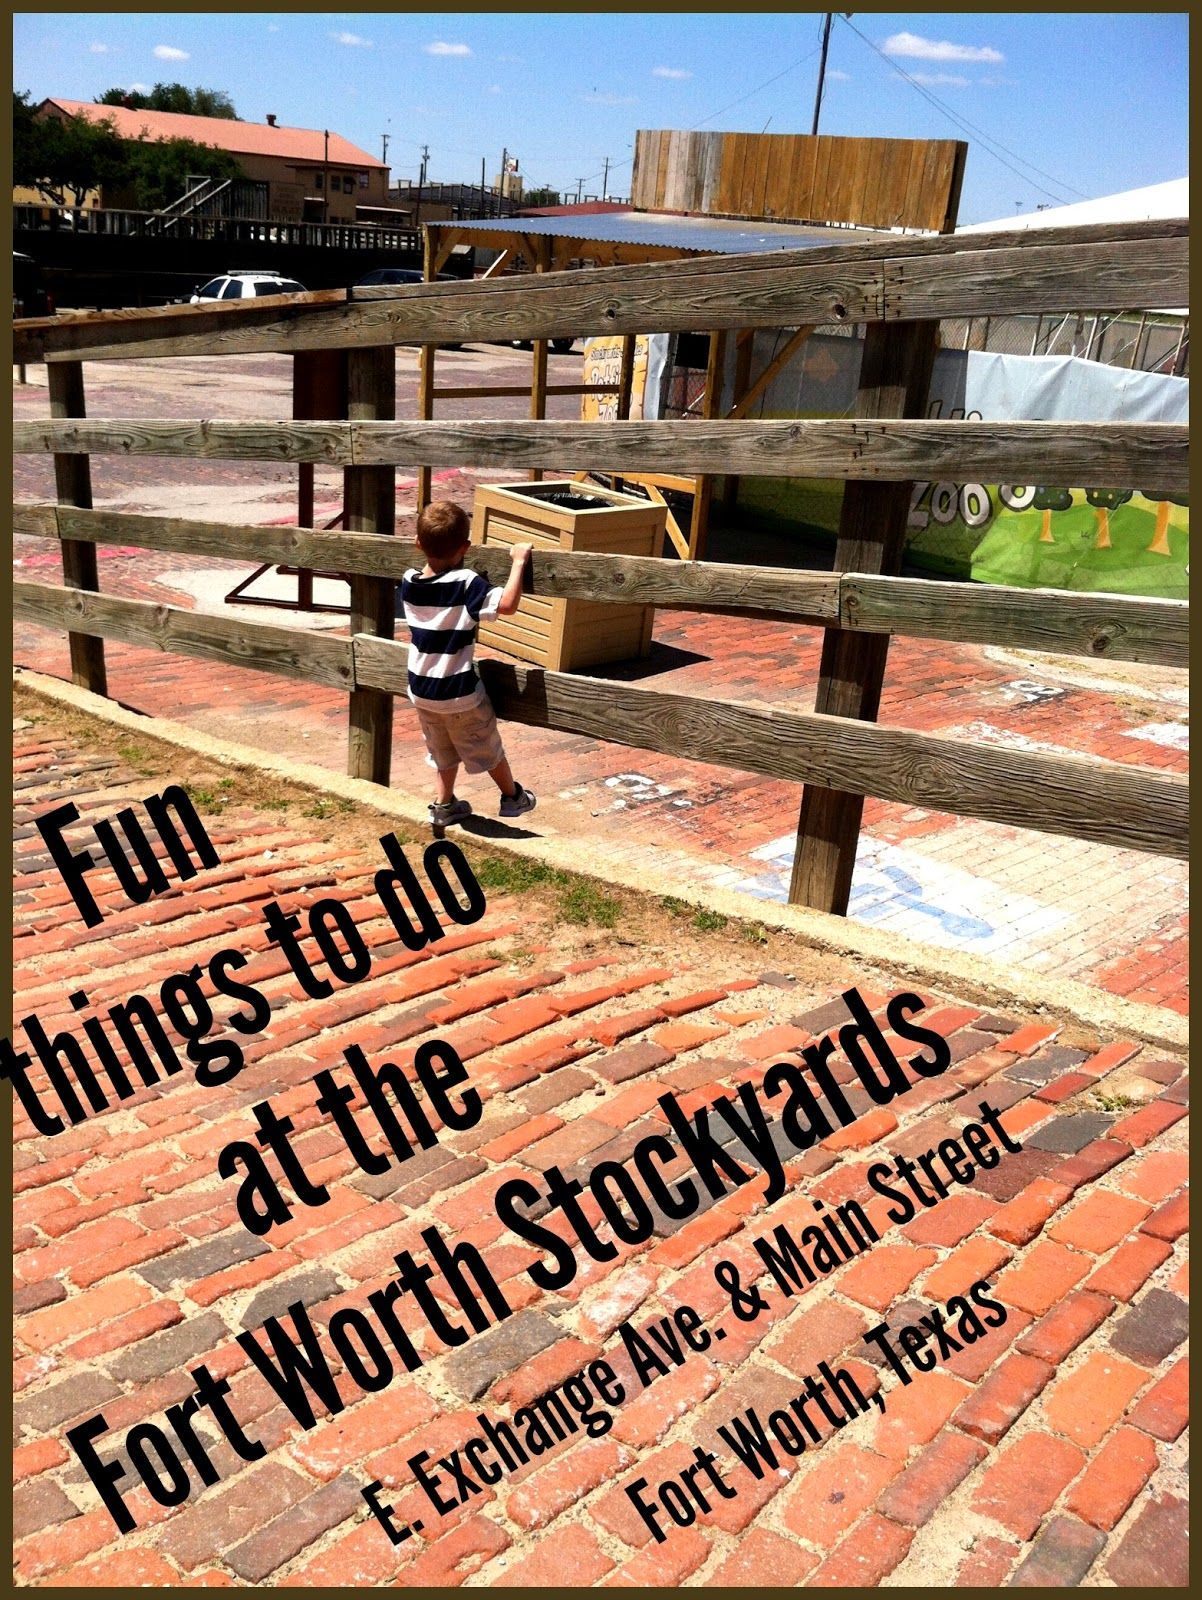 Fun thing to do at the fort worth stockyards ftw tx visit fort